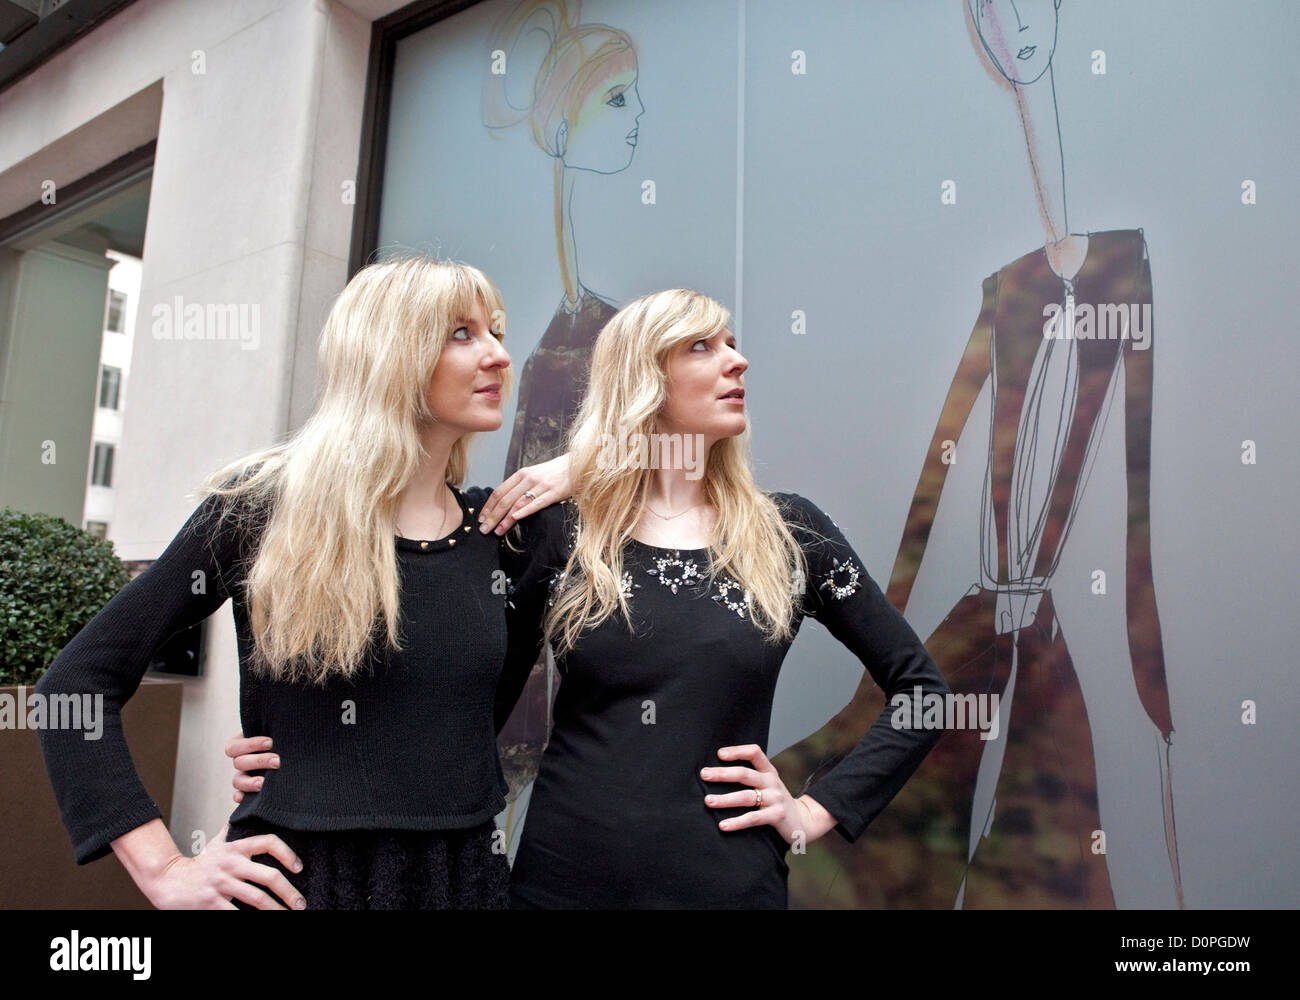 The May Fair Hotel as it unveils its spectacular designer windows by Felder & Felder in celebration of London Fashion Stock Photo